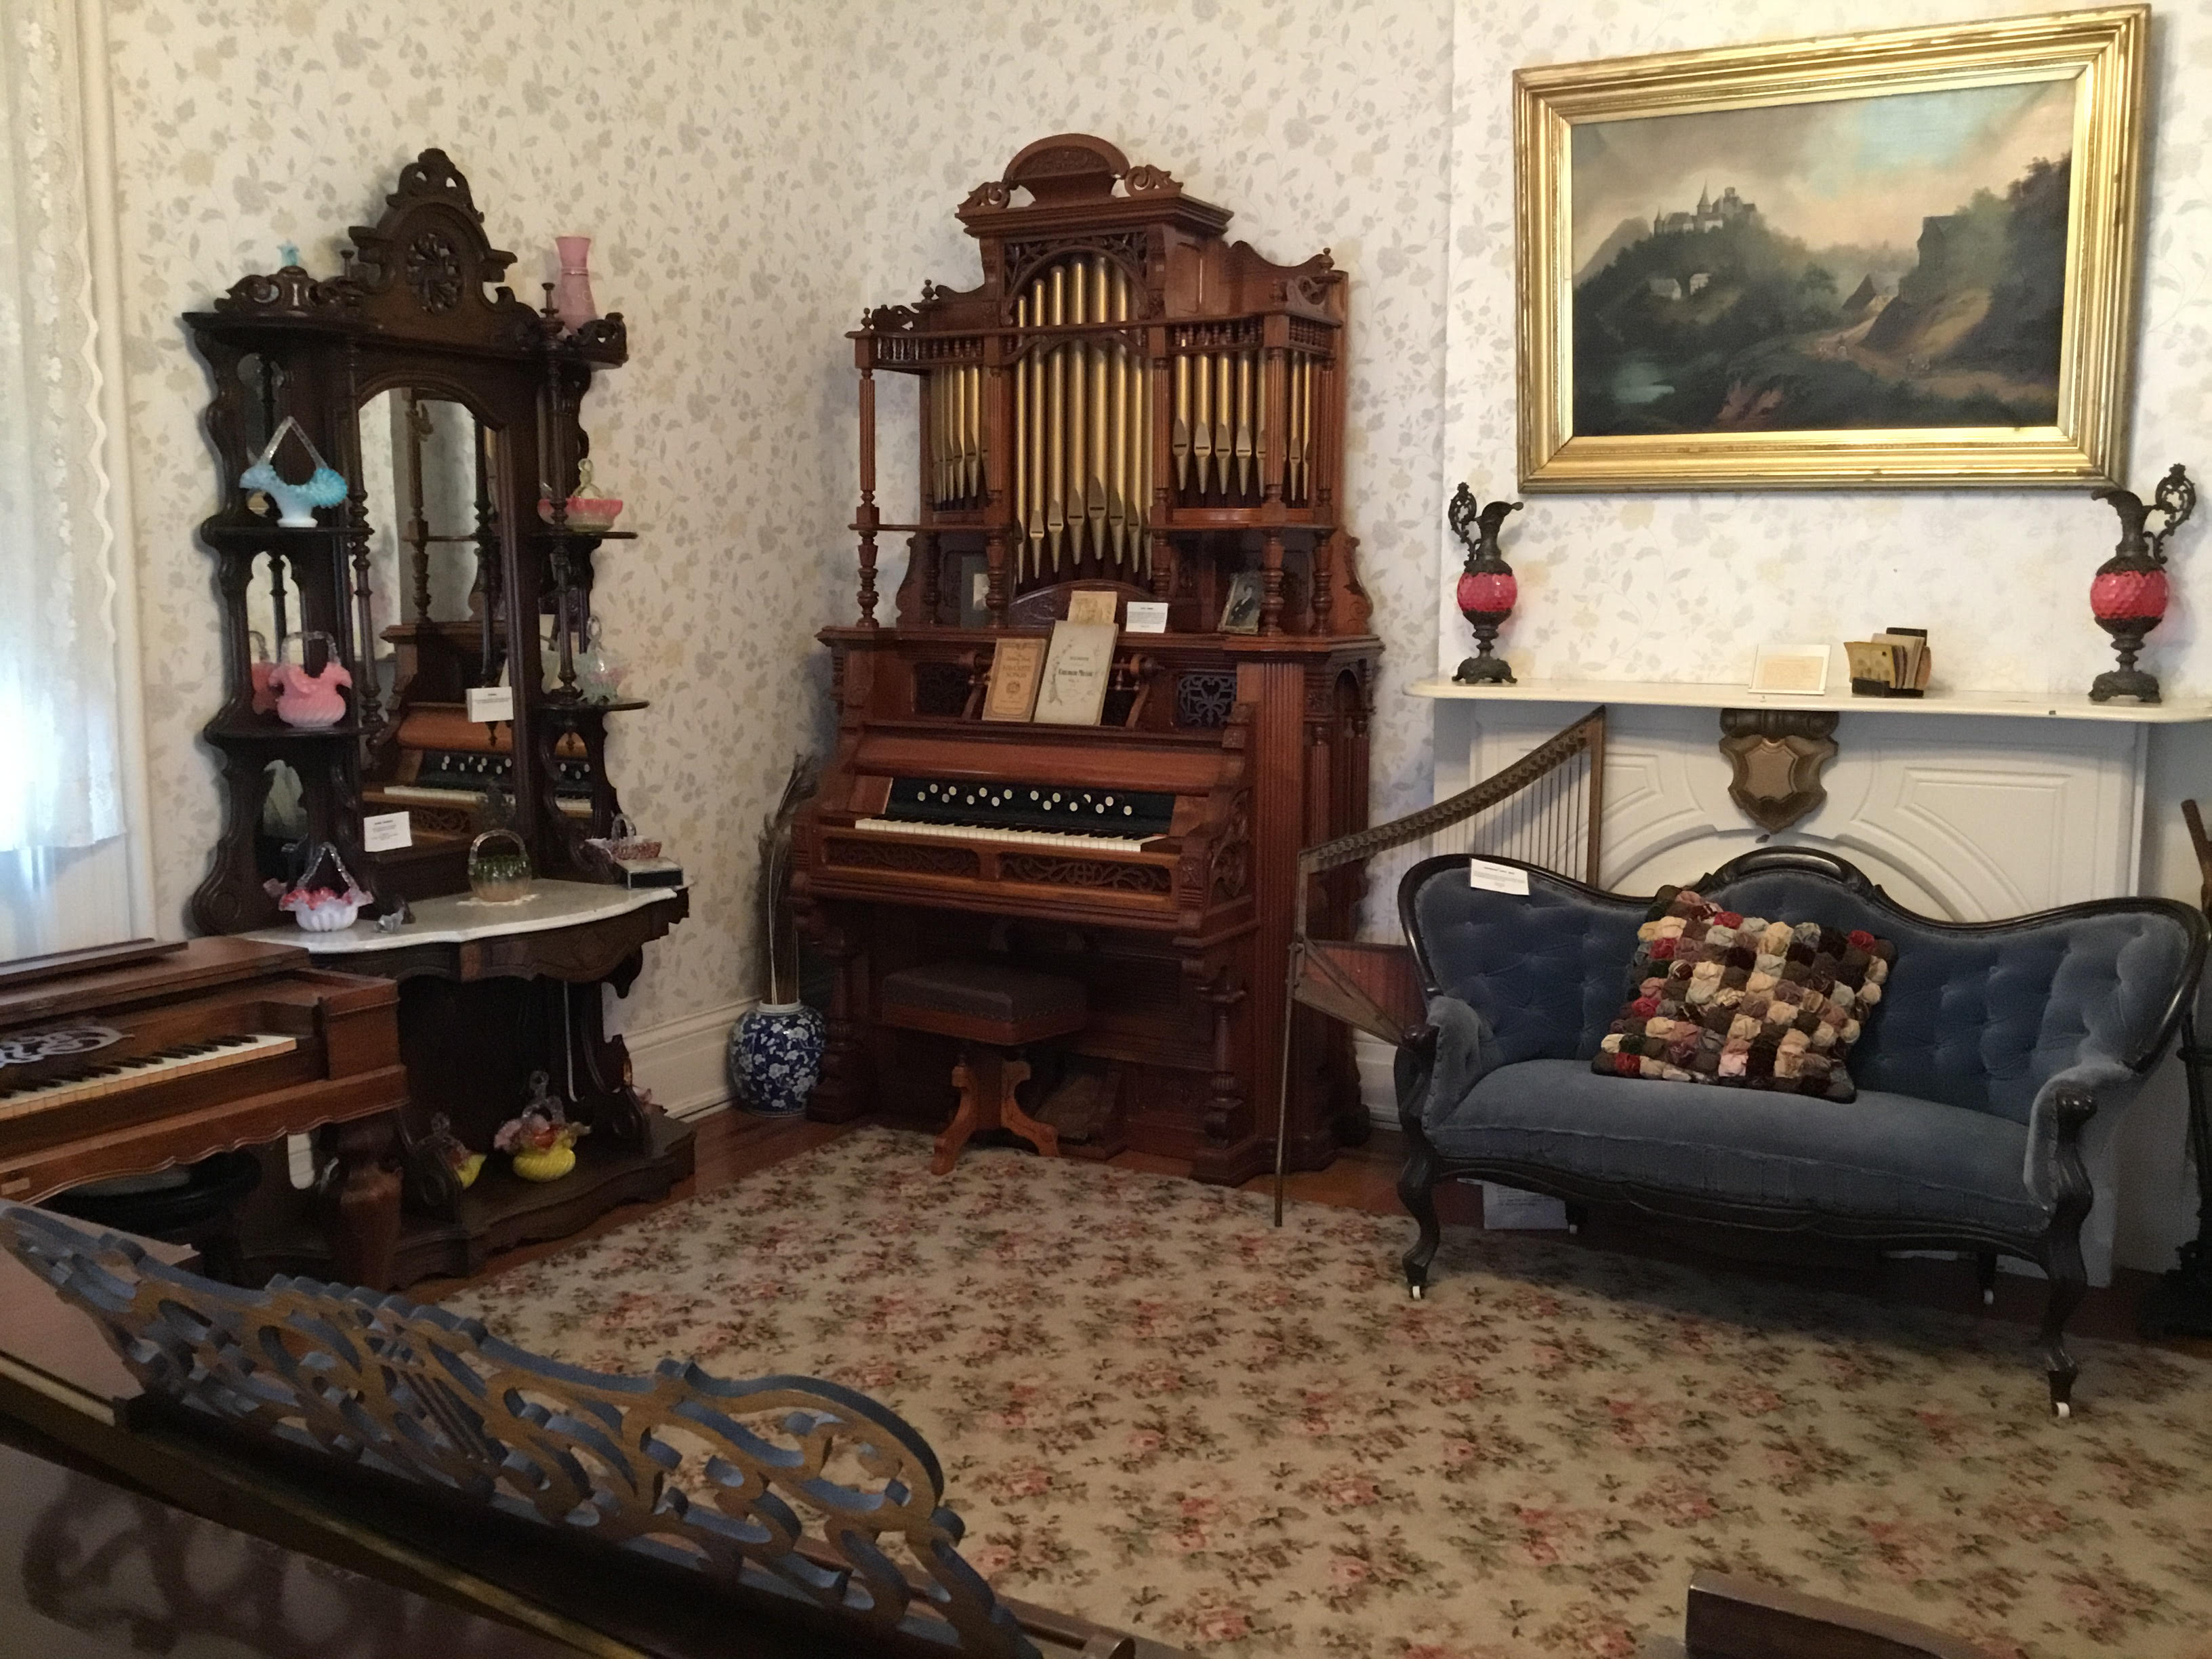 In the corner of this room is an 1870 pump organ, which was restored in the 1940s. Image courtesy of the Fayette County Historical Society.